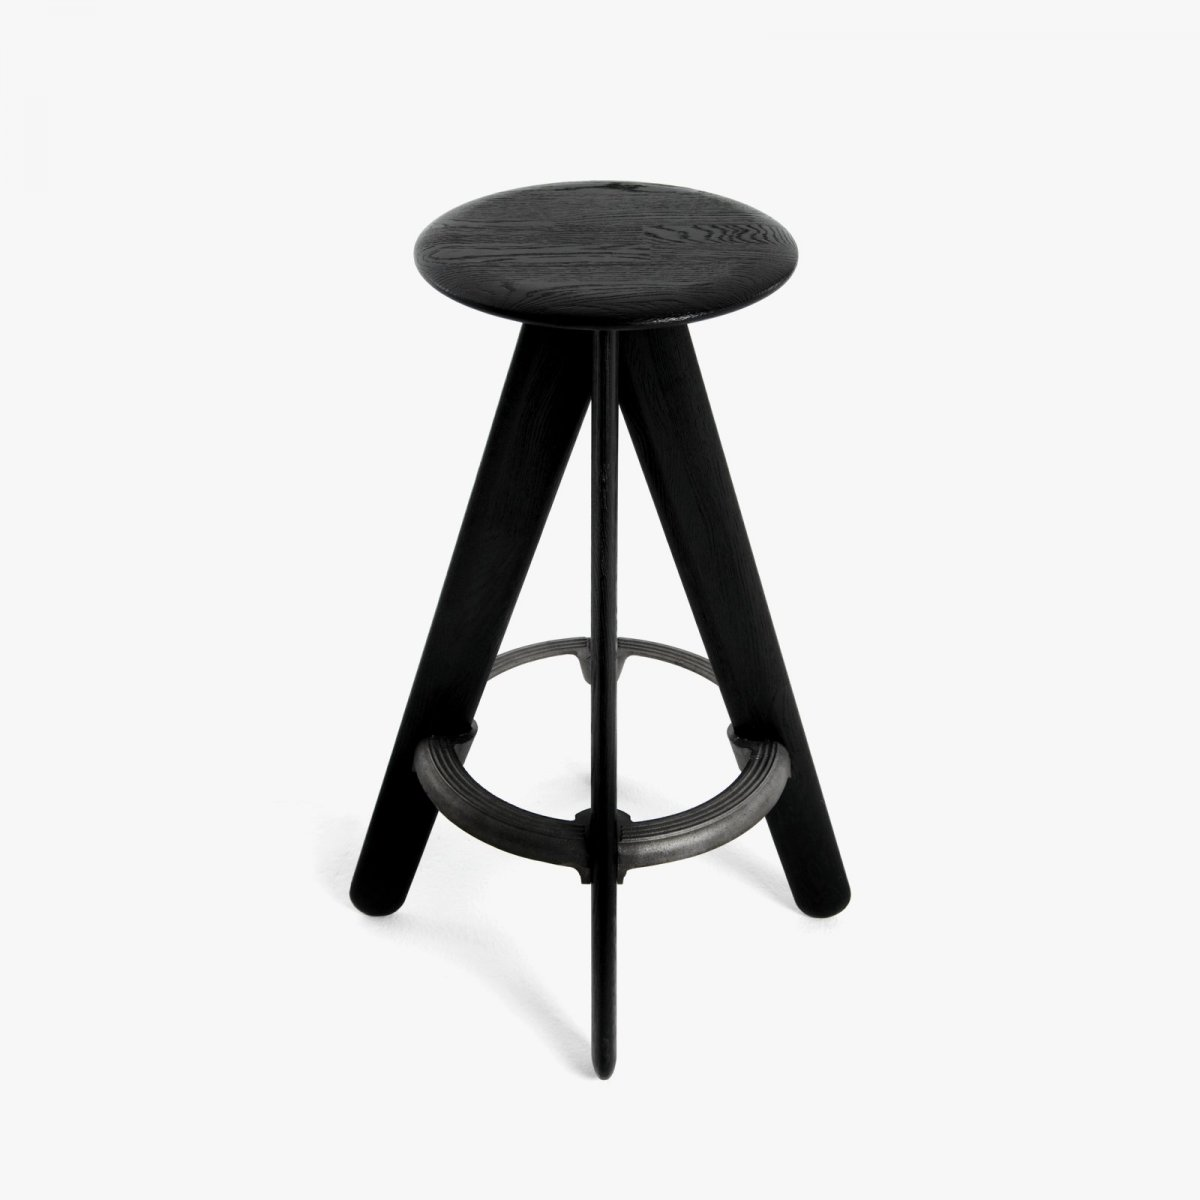 Slab Bar Stool, black.